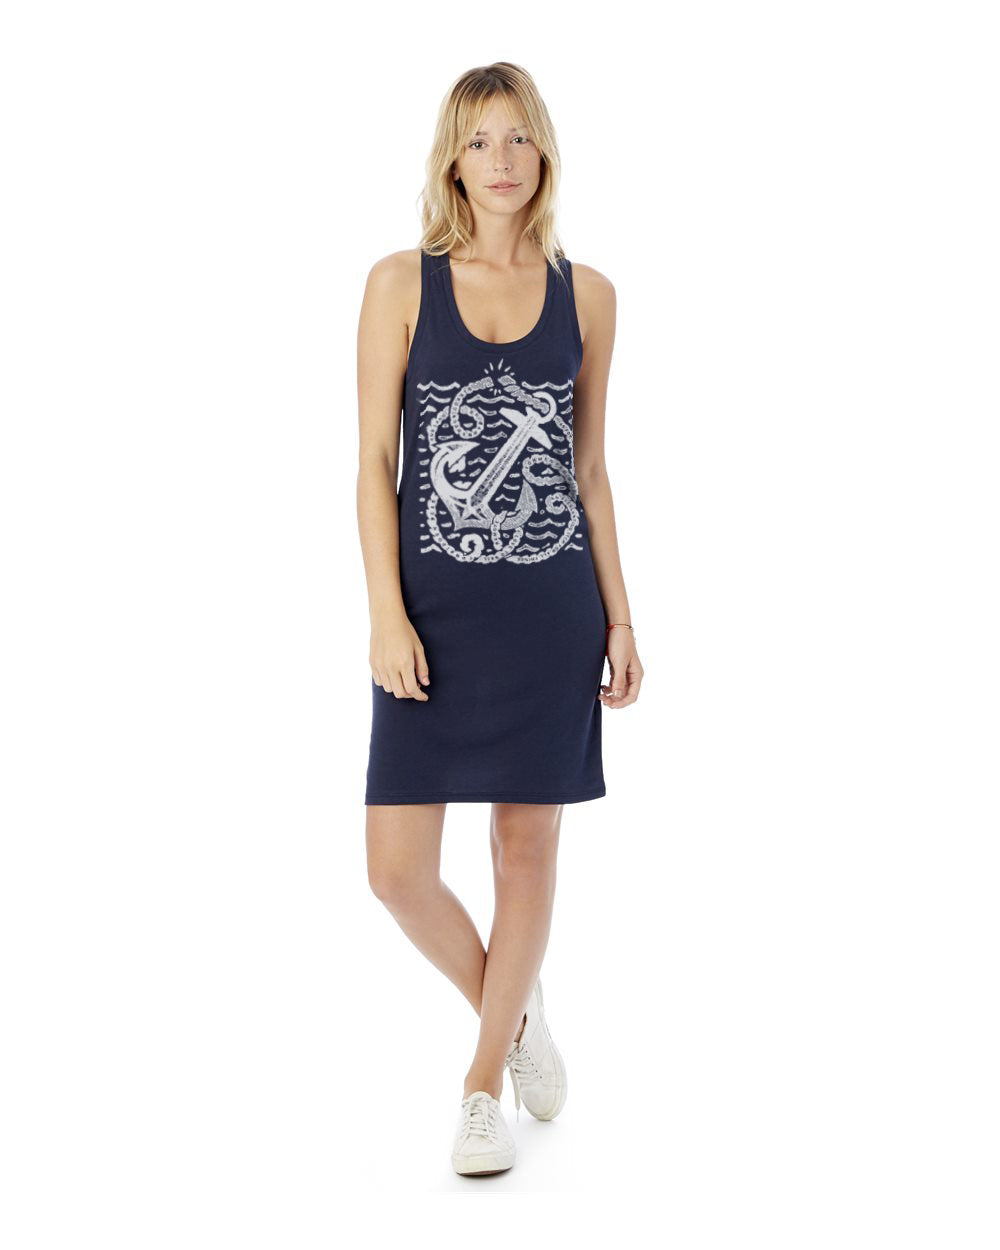 Anchor Rope Women's Cotton Modal Jersey Tank Dress